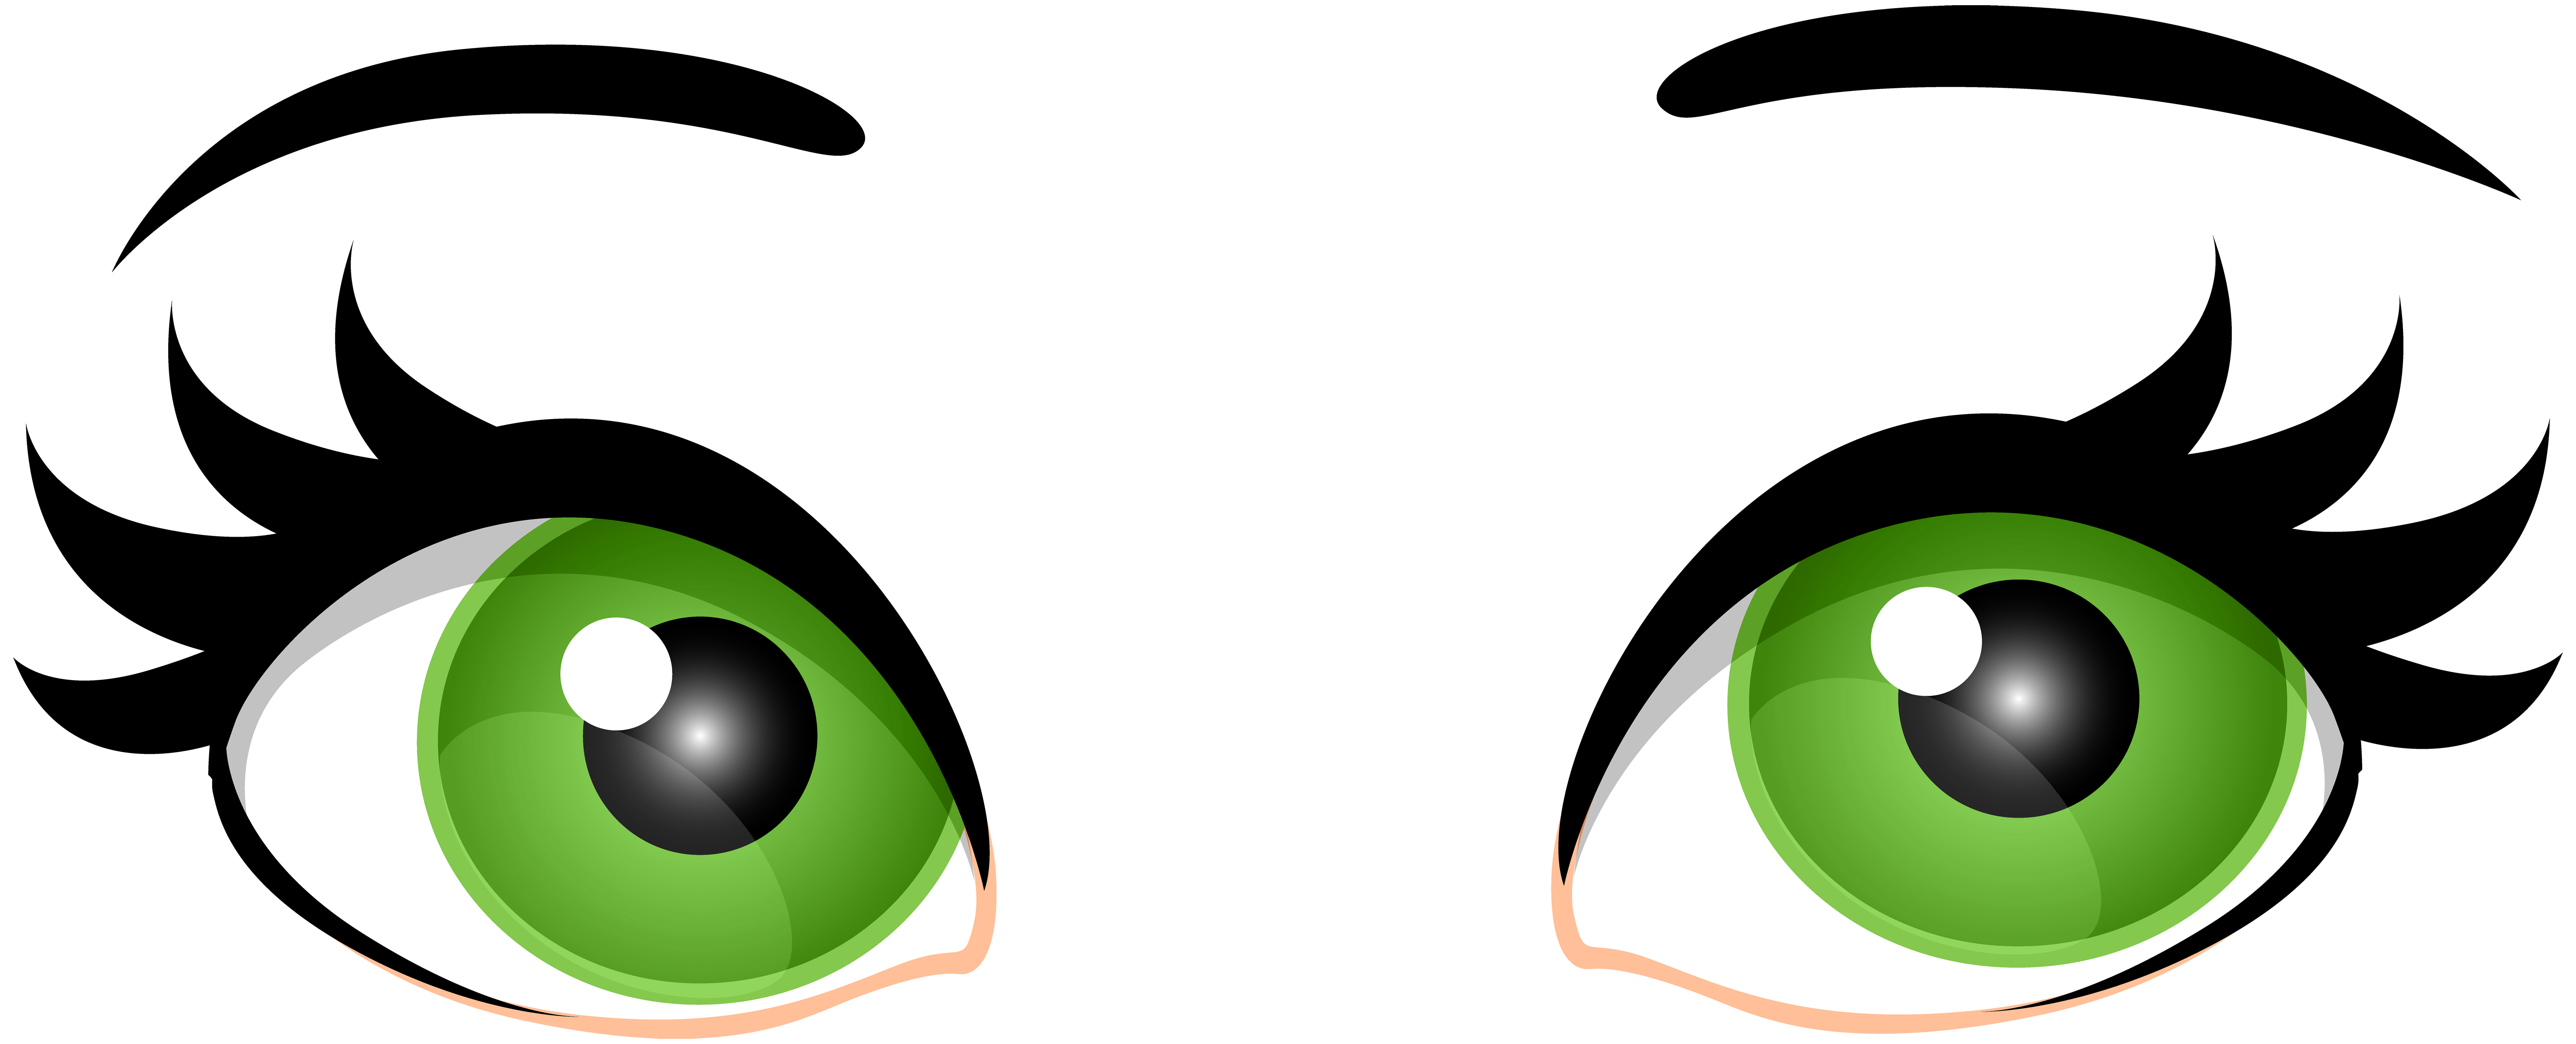 Picture clipart green. Female eyes png clip